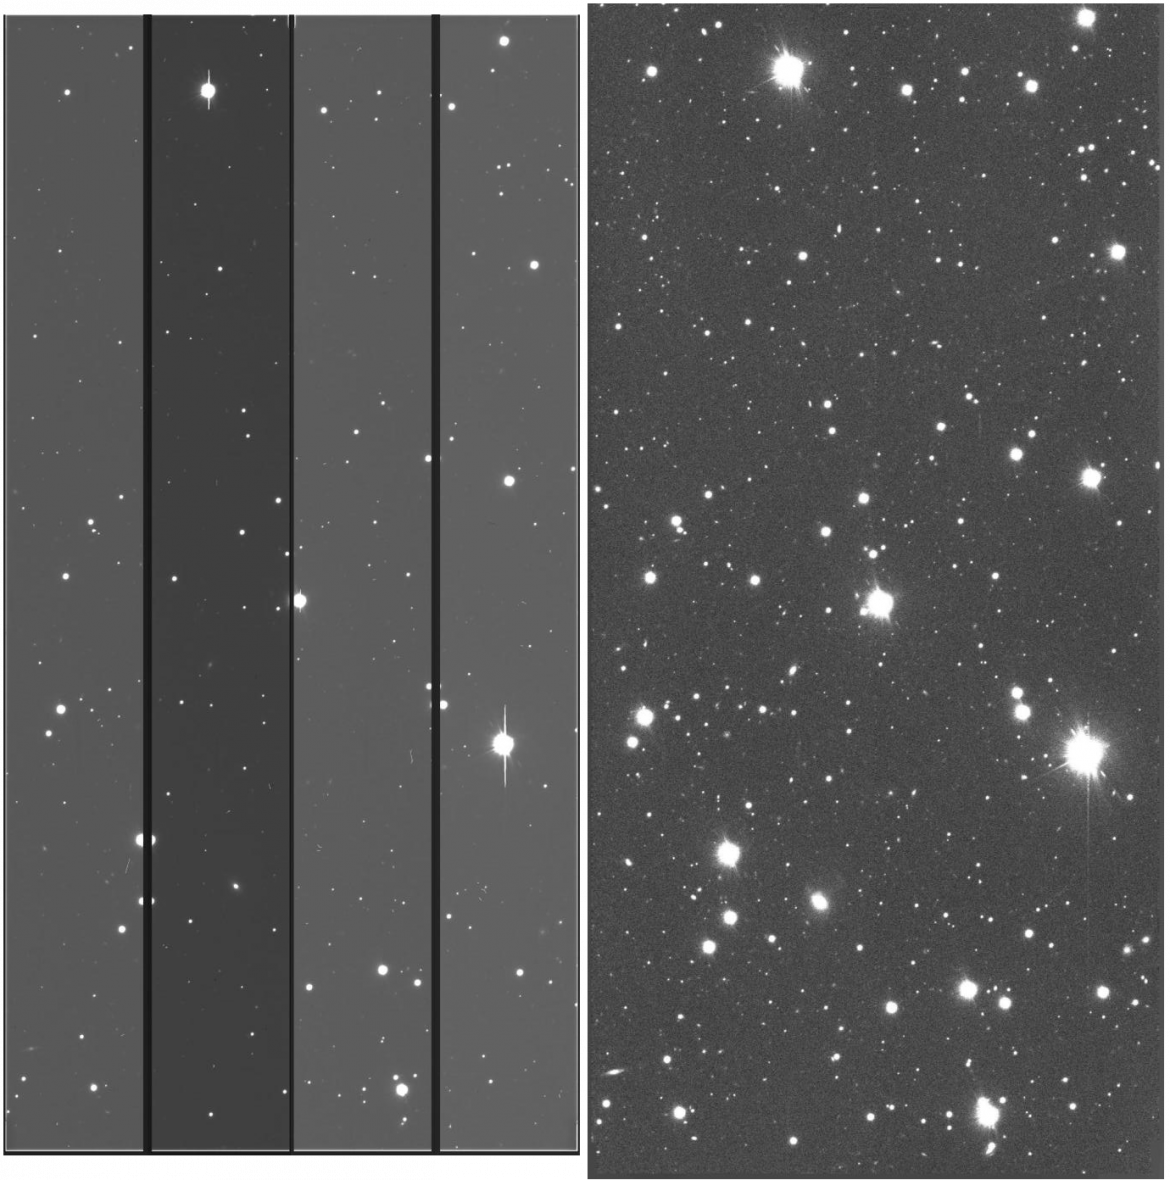 Astronomical Image Processing in the Cloud